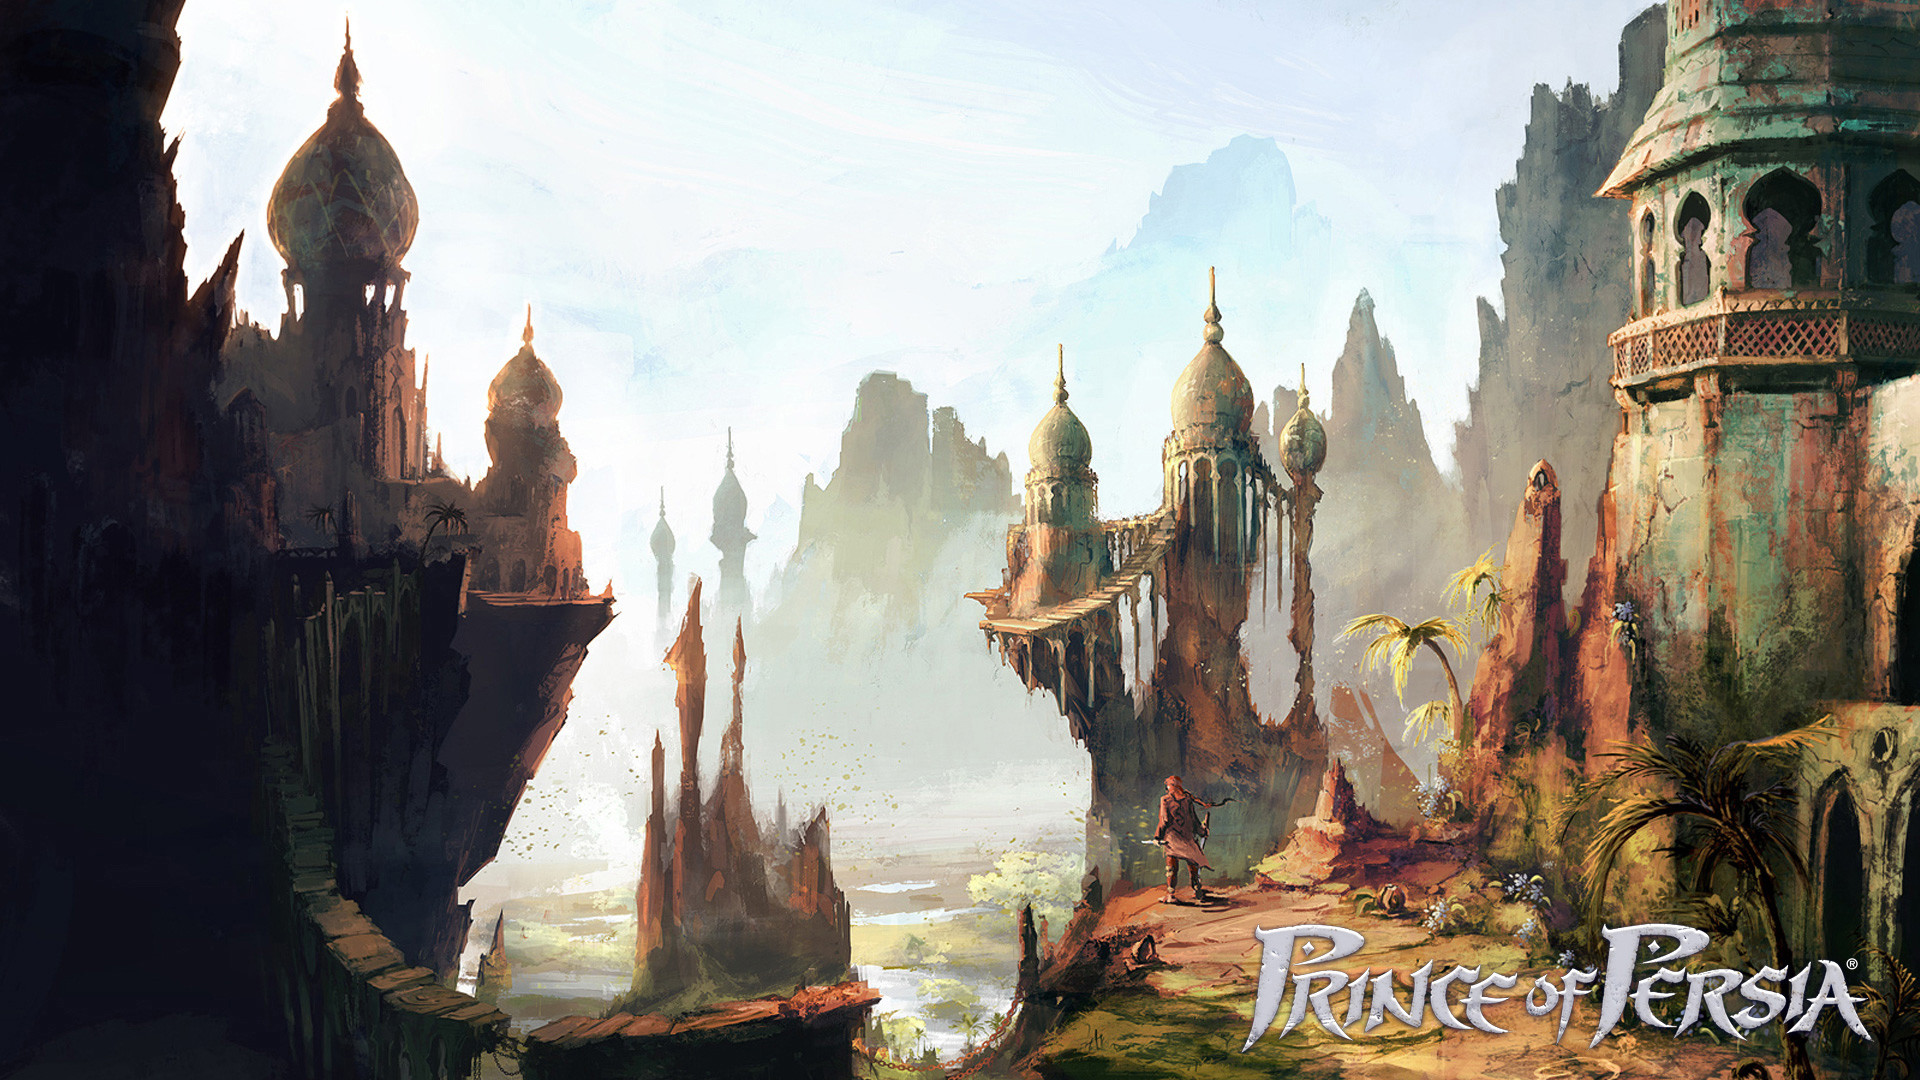 1920x1080 Video Game - Prince Of Persia Wallpaper